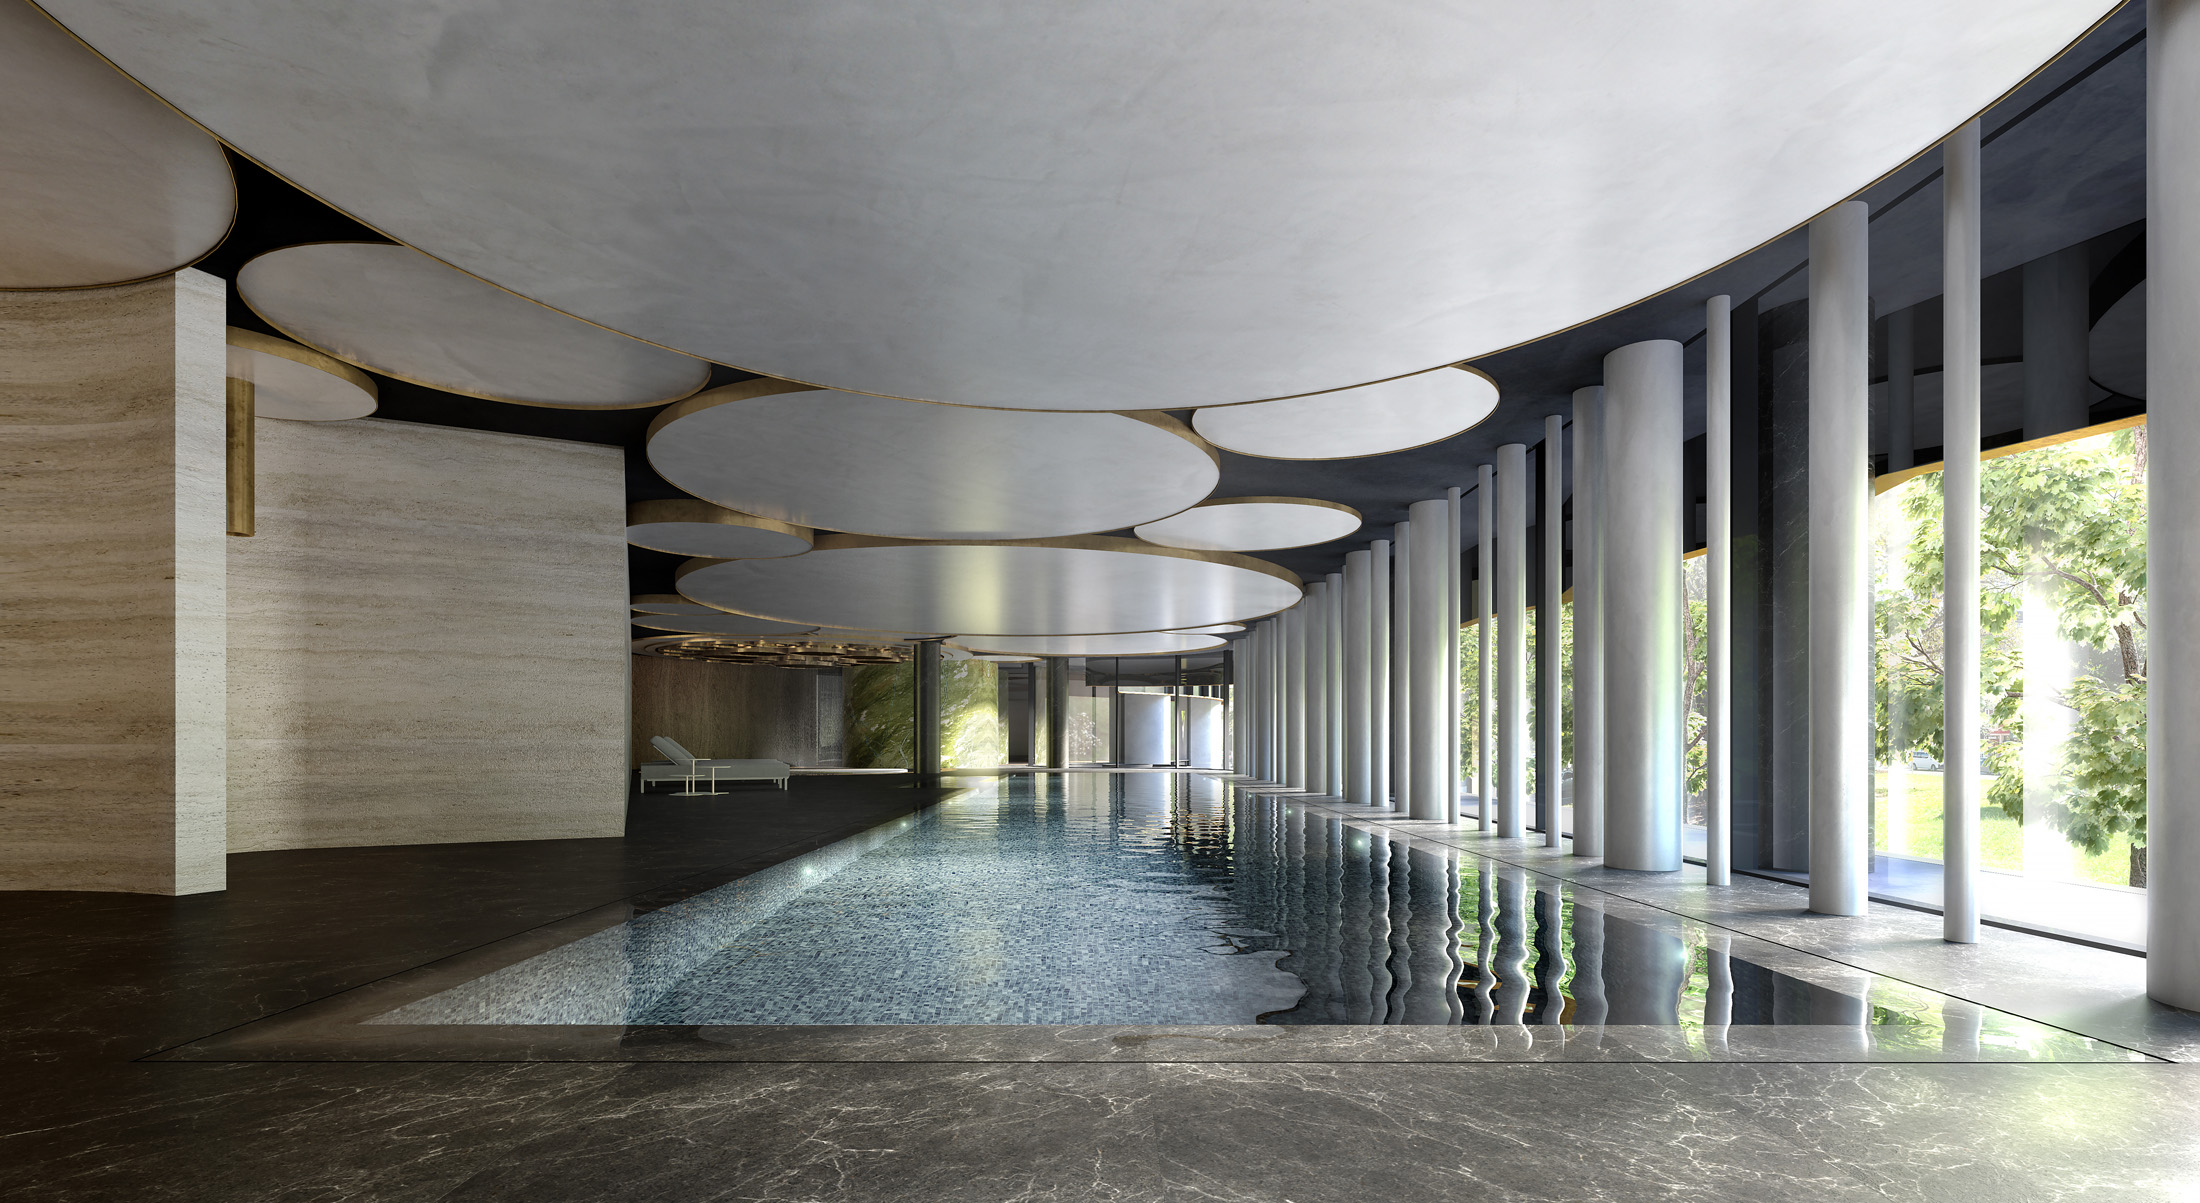 The-Muse-apartment-living-image-photography-3d-renders-FKD-studio-pool